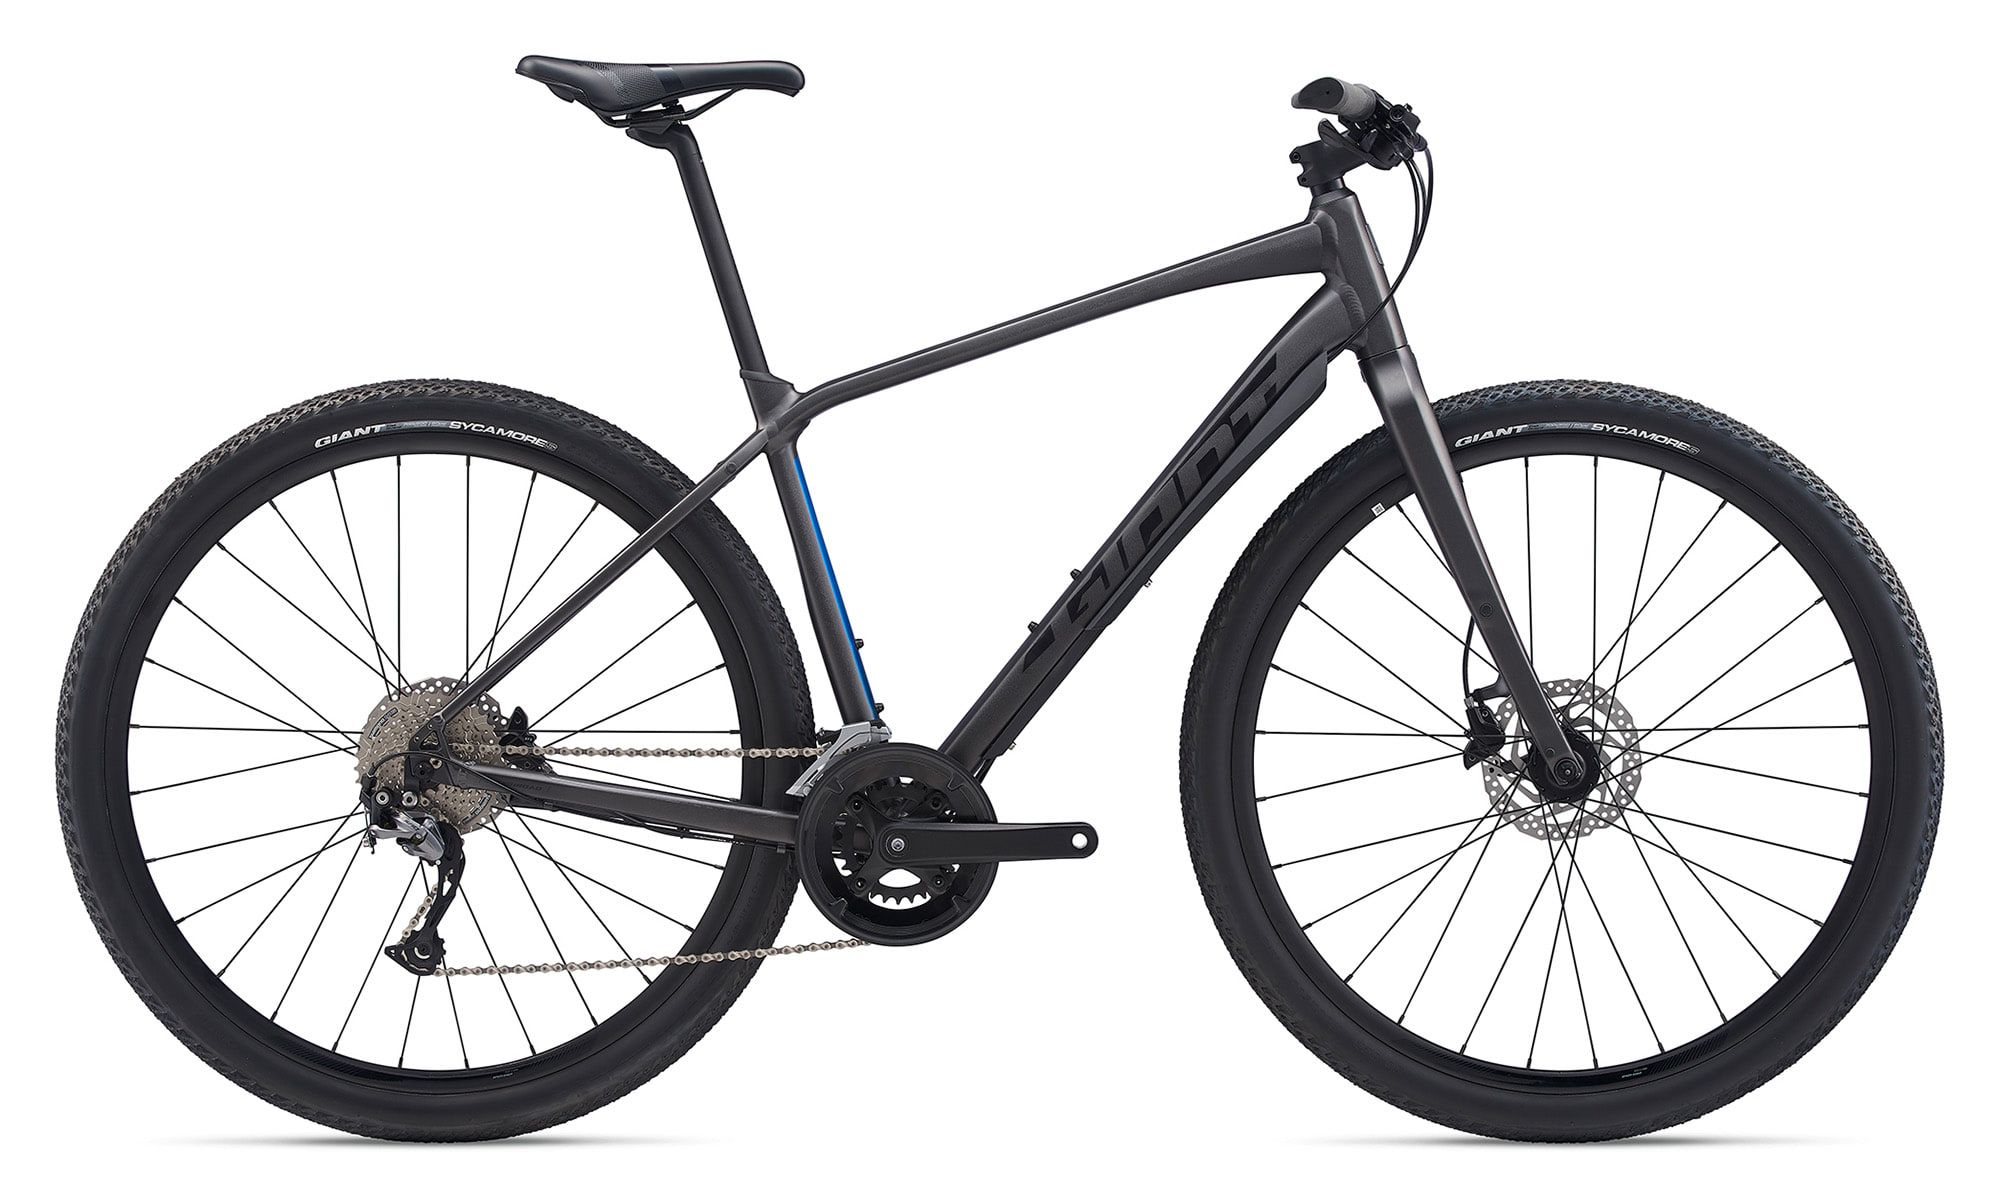 Giant Toughroad Slr 2 All Road Bike 2020 | City-cykler